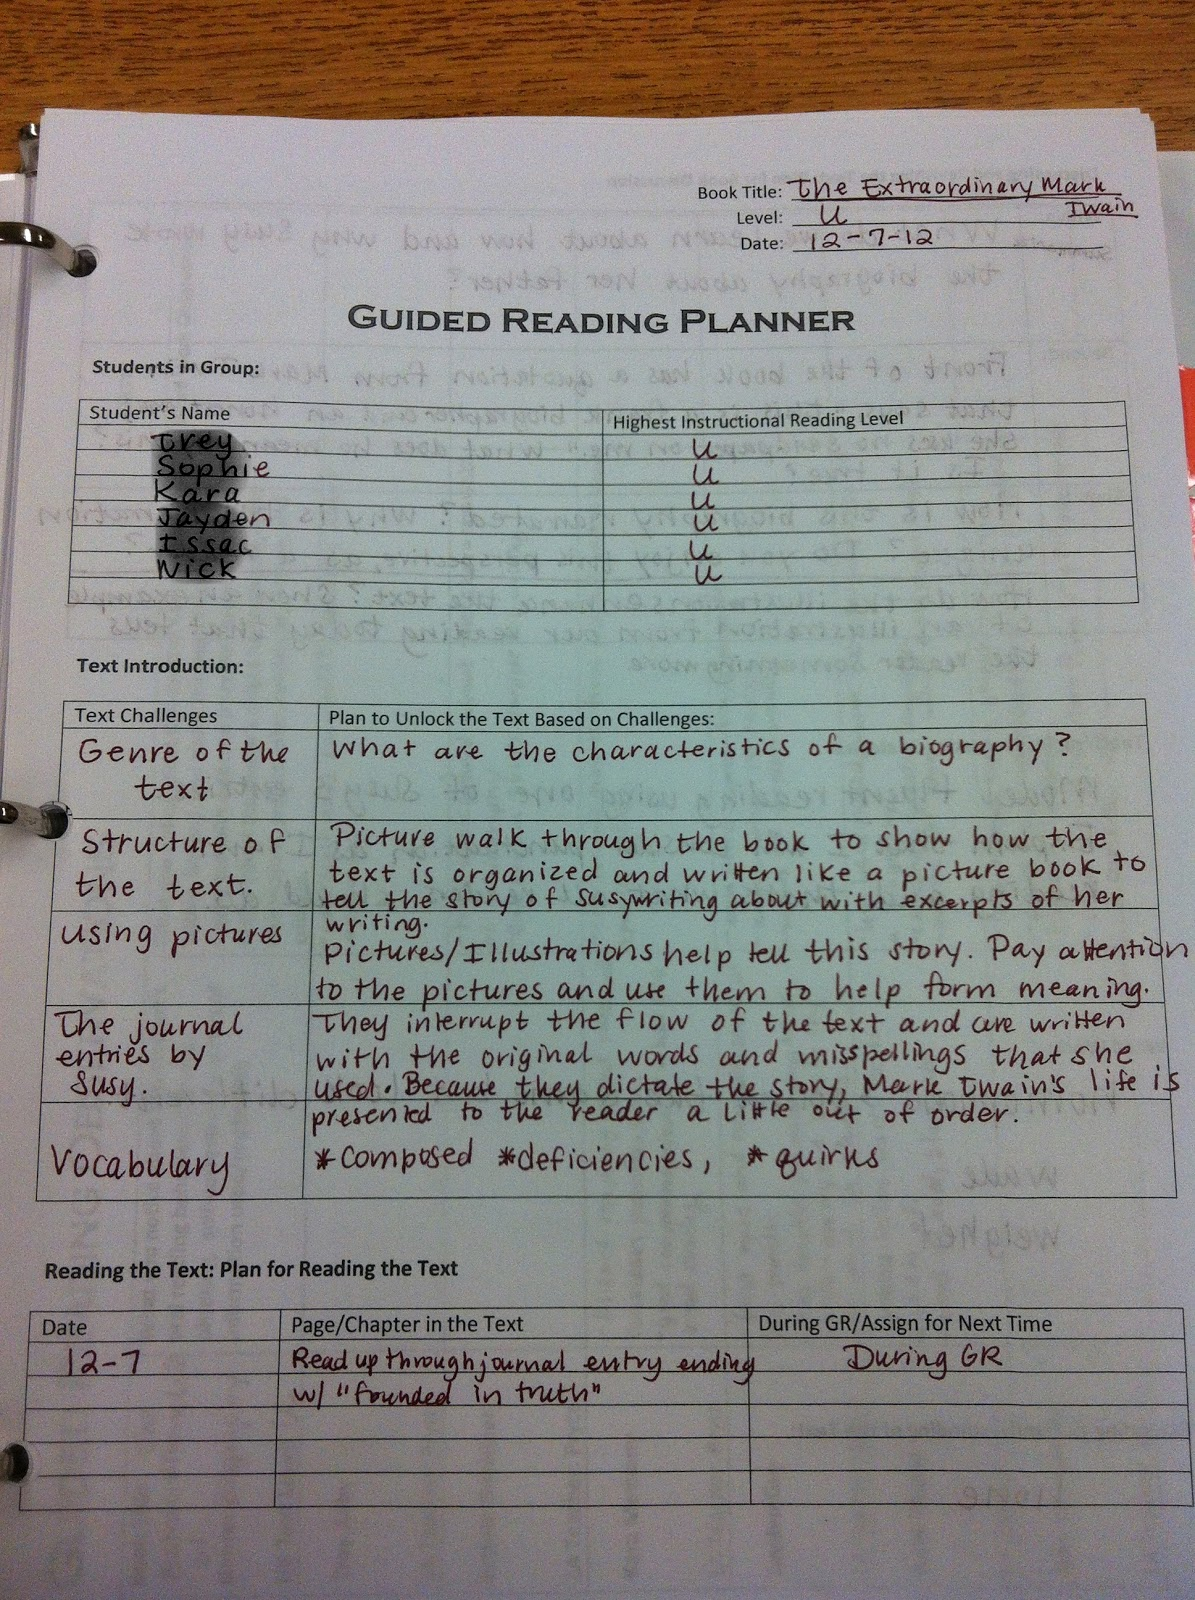 Sample Guided Reading Lesson Plan Template - Design Templates